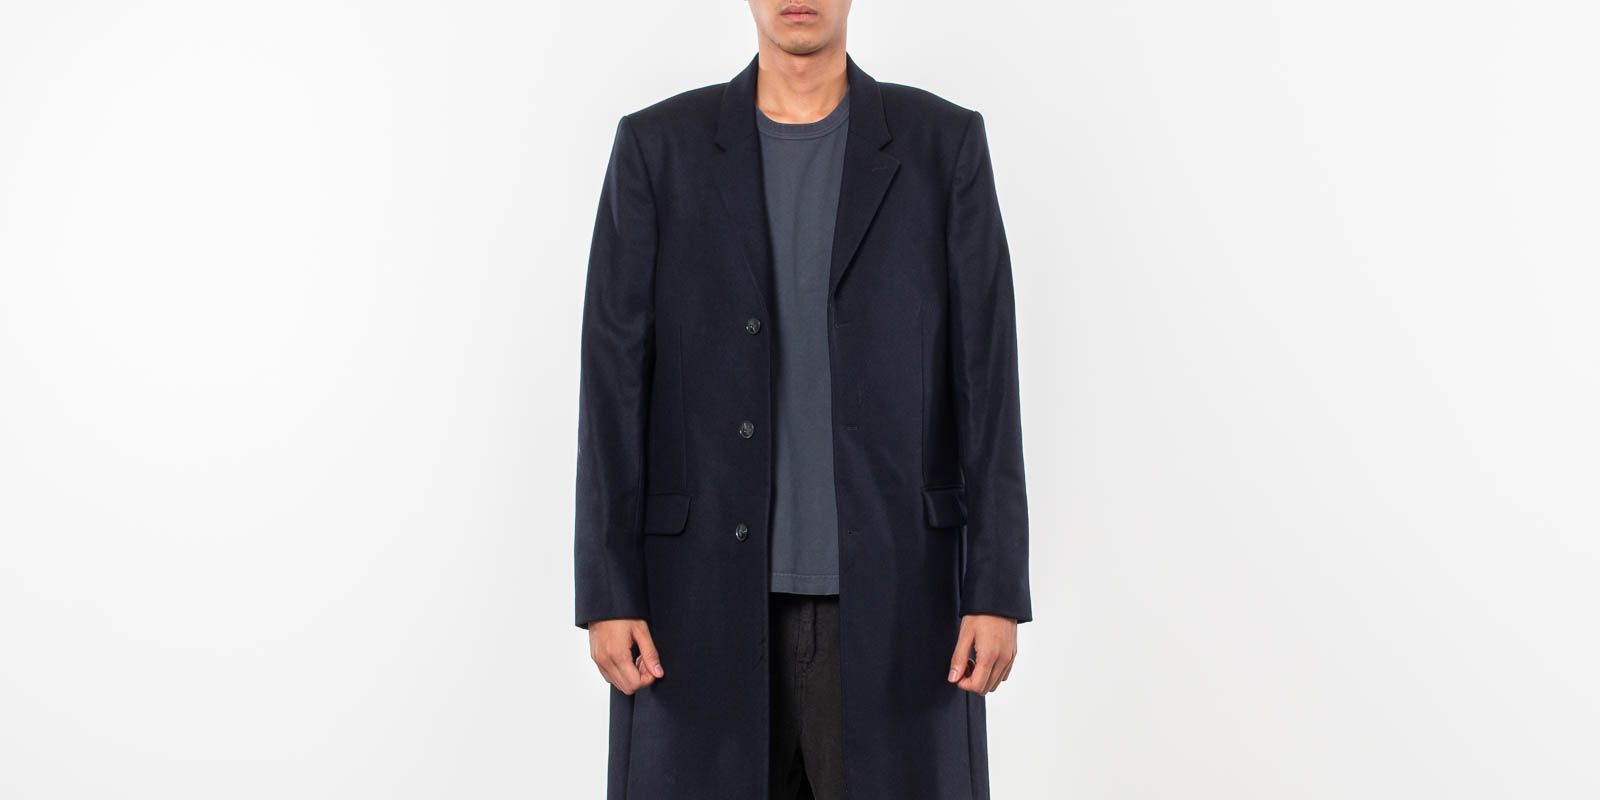 Junk de Luxe Rune Coat Dark Navy